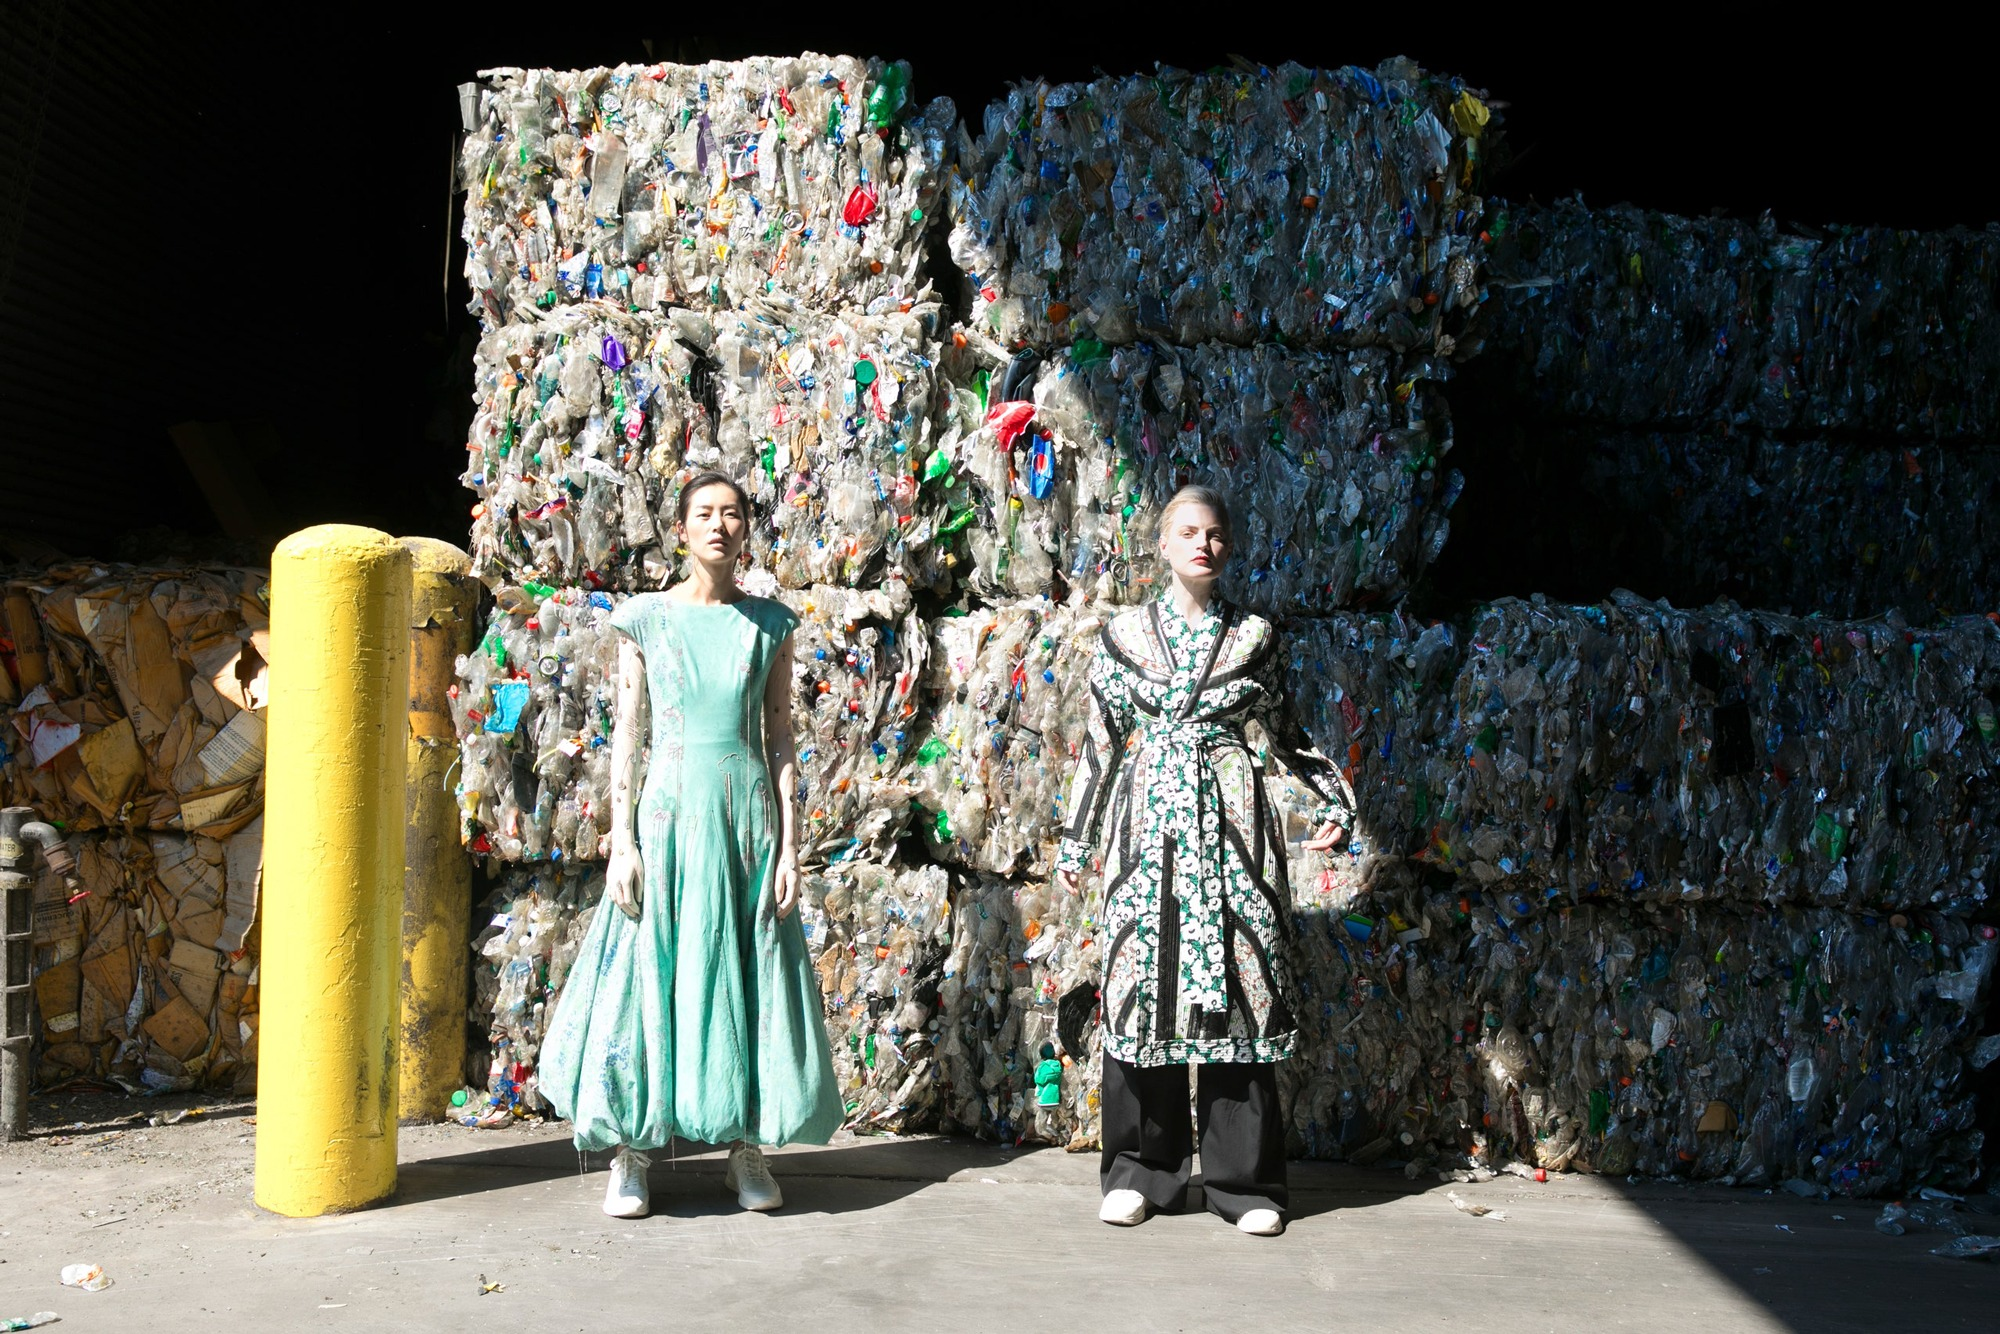 fashion-industry-climate-change-sustainability-upcycling